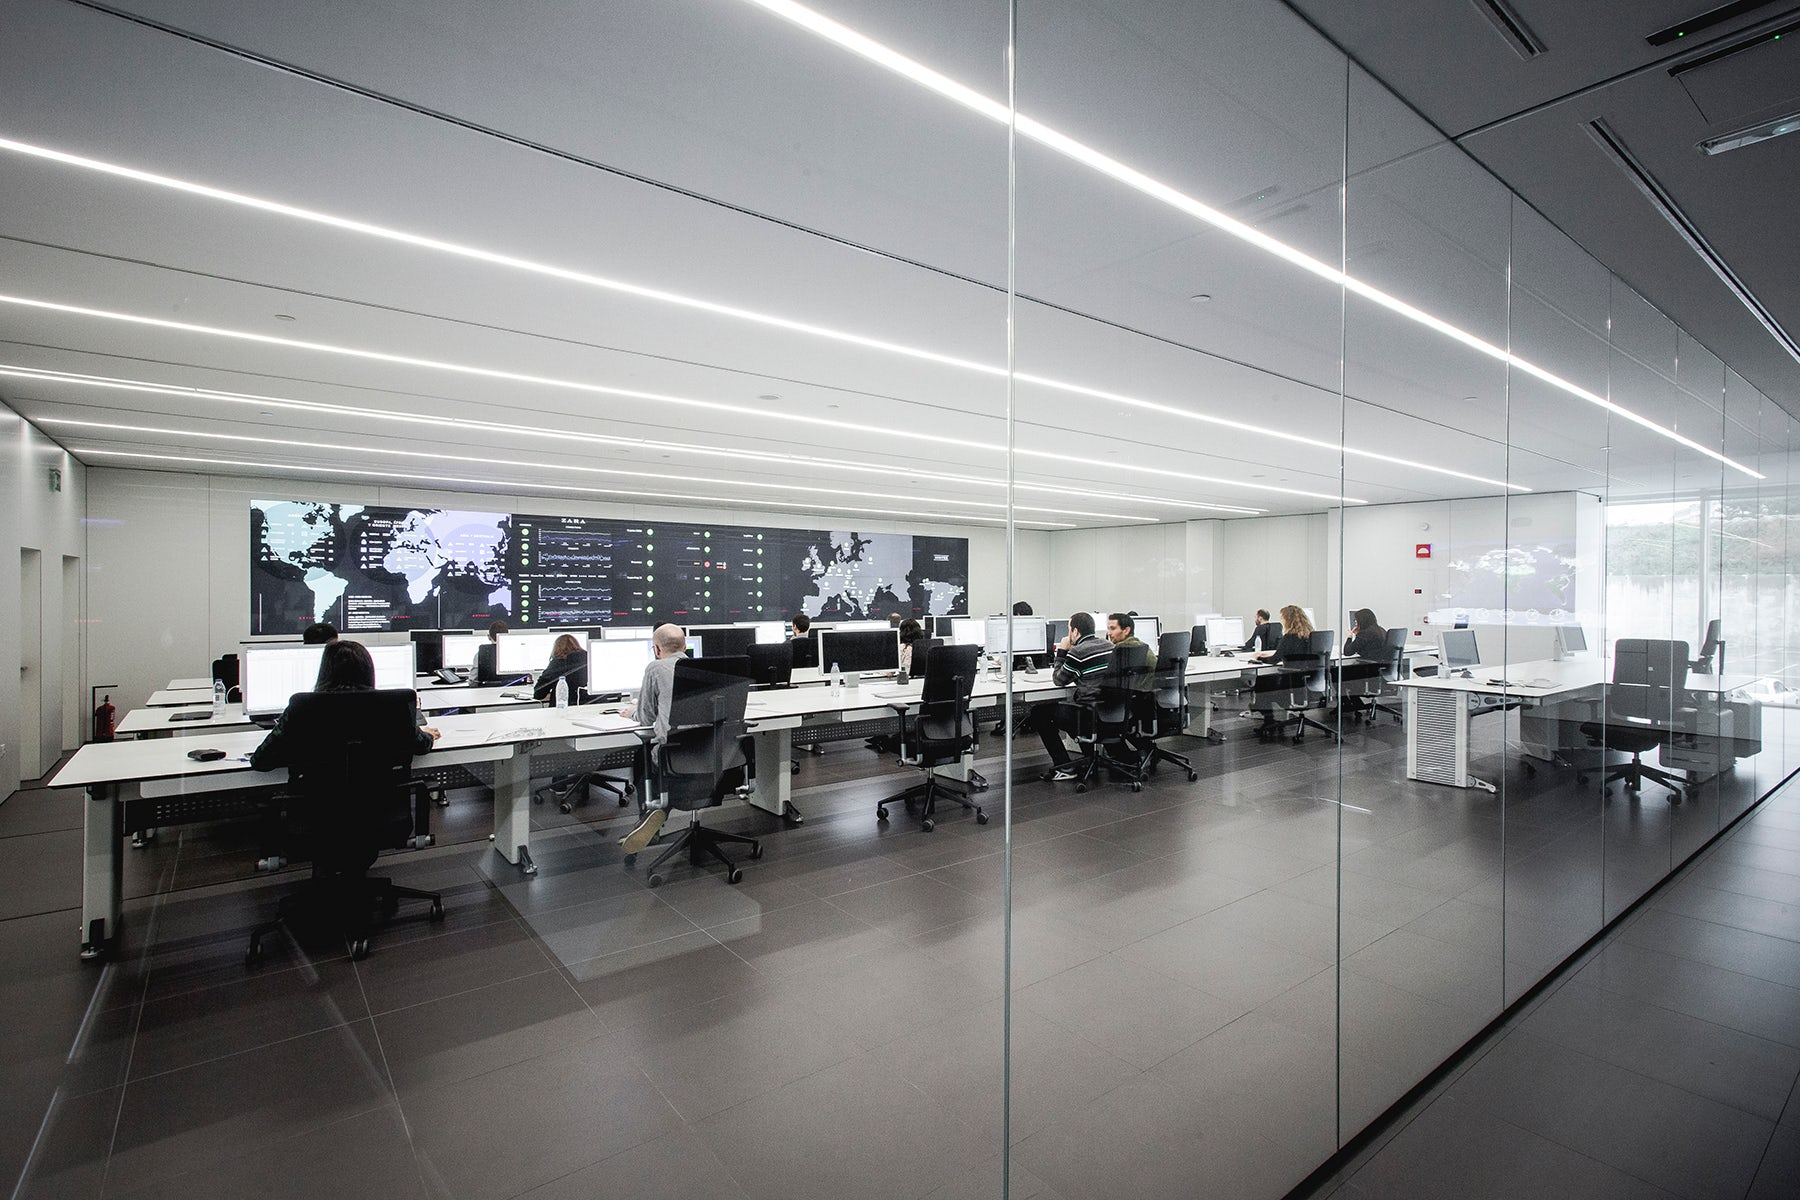 The data centre at Inditex's global headquarters   Source: Inditex